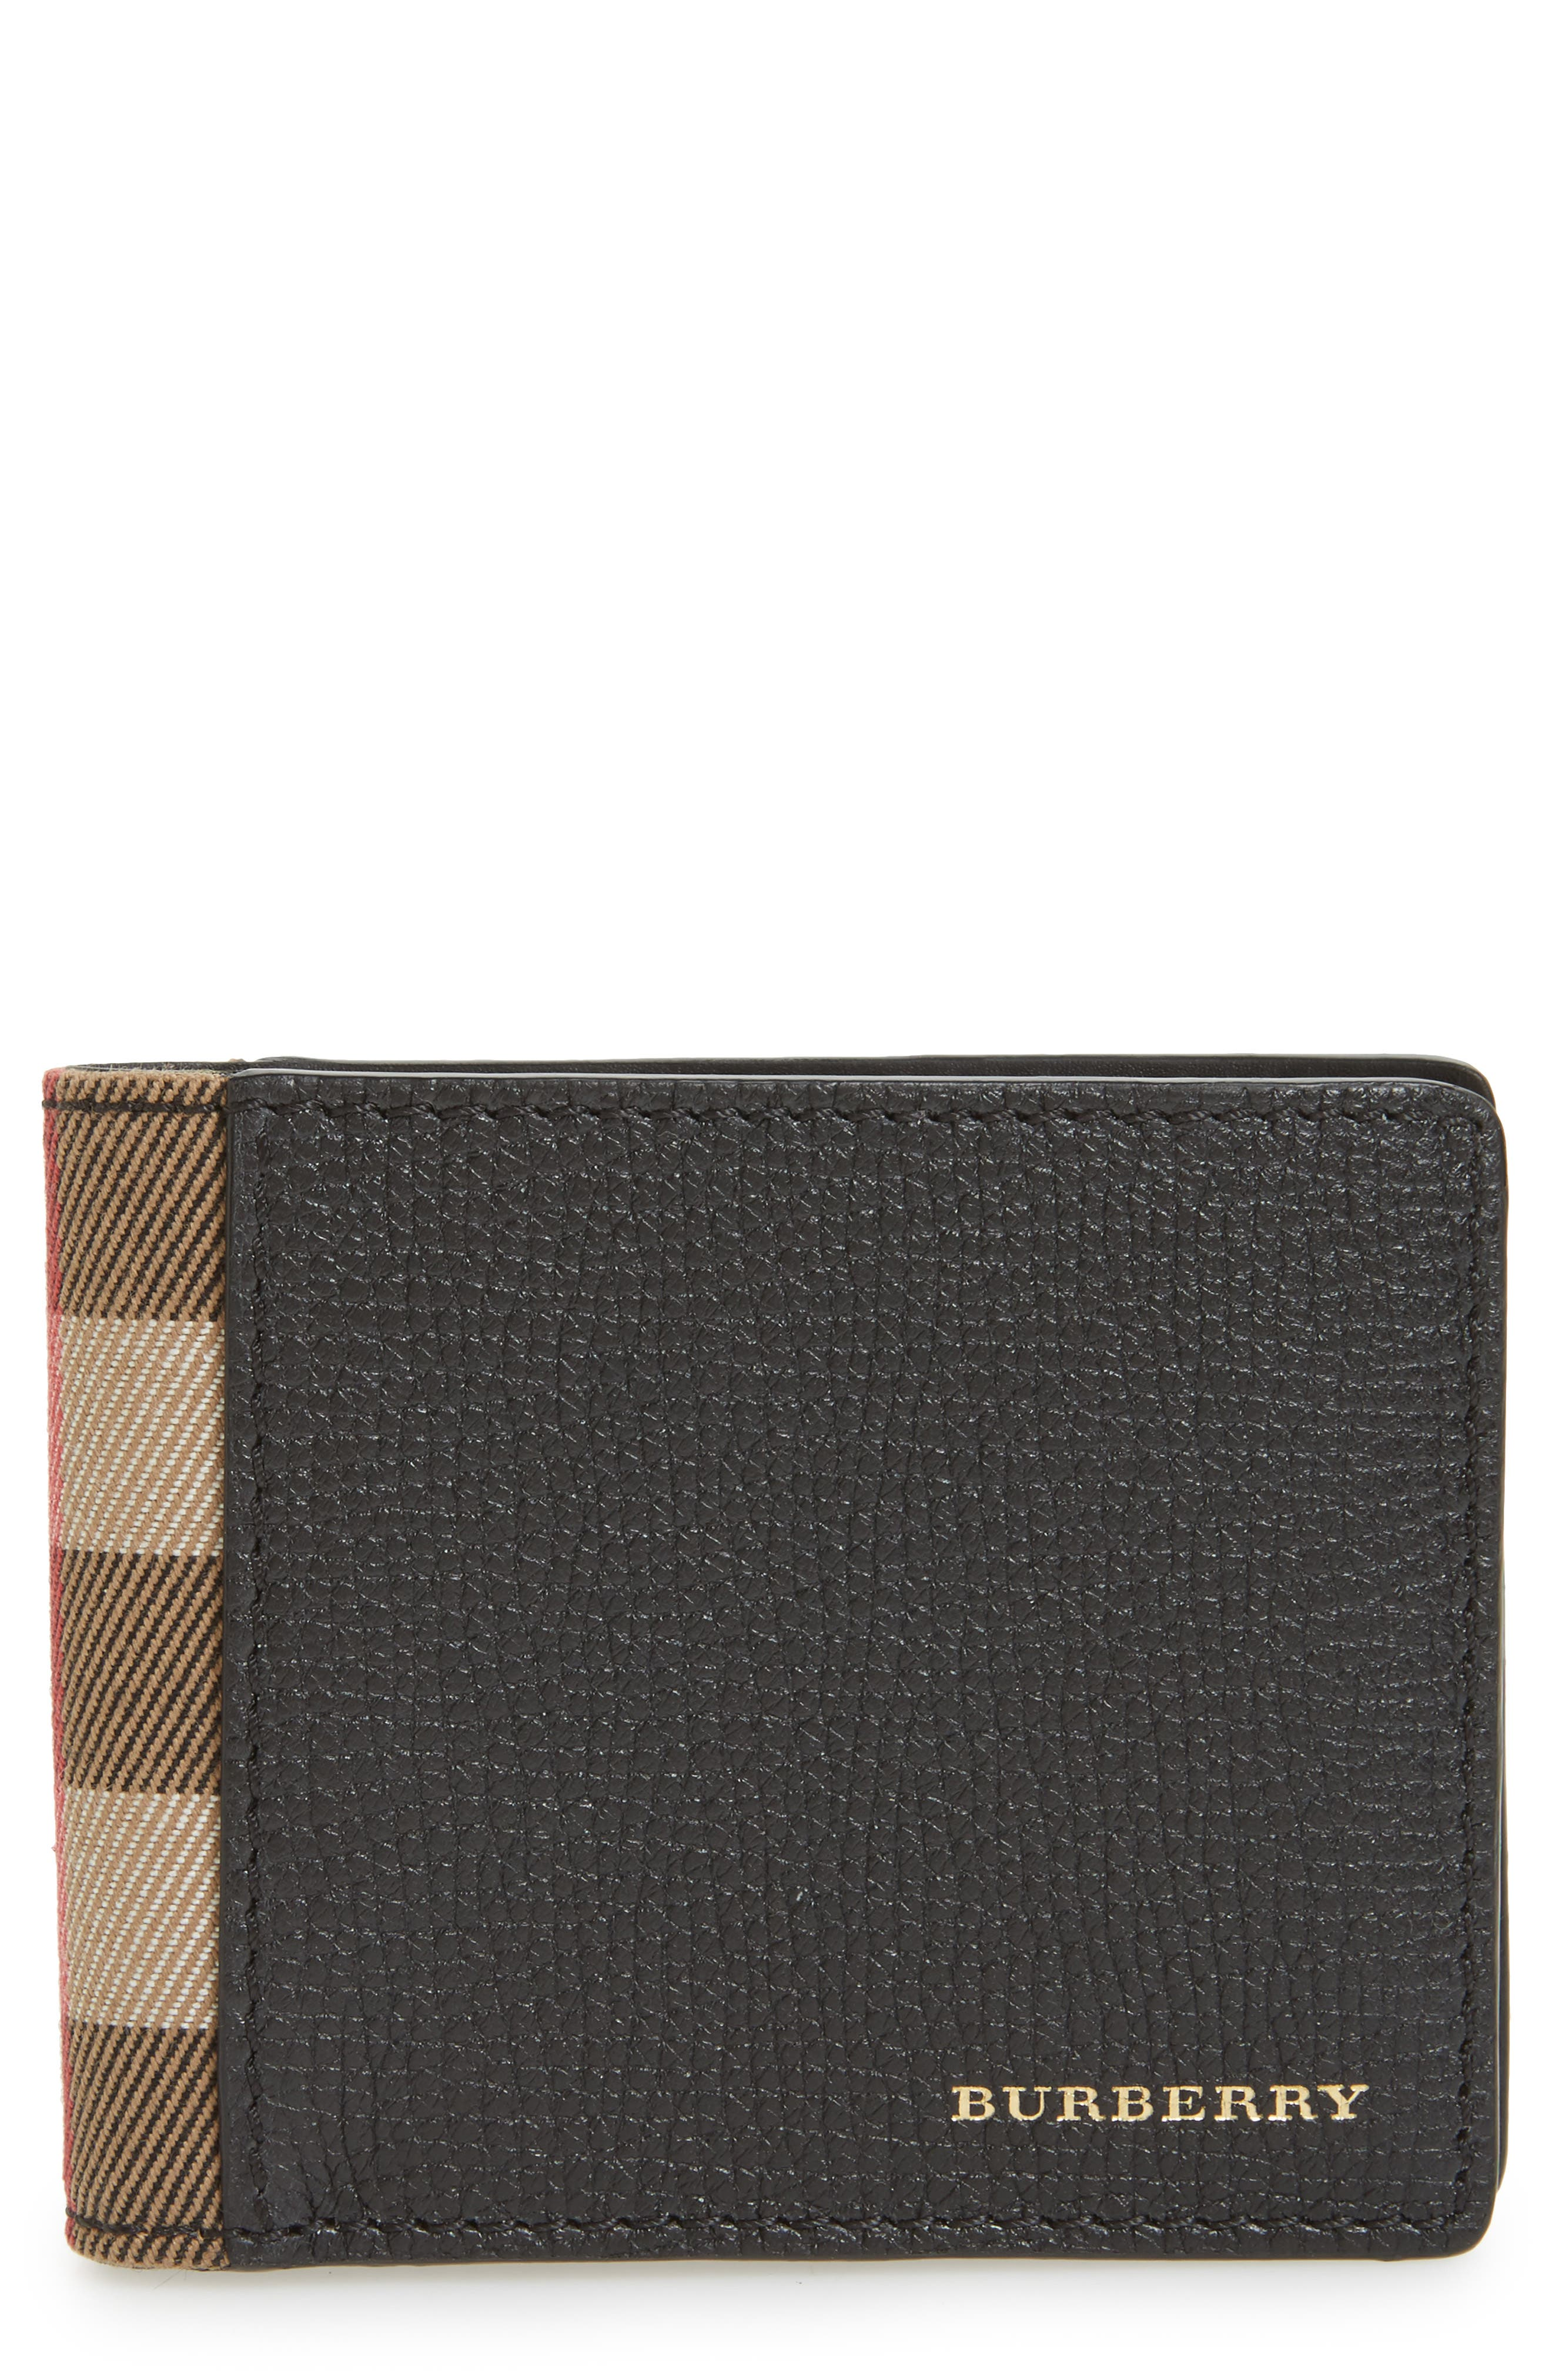 Check Leather Wallet,                         Main,                         color, Black